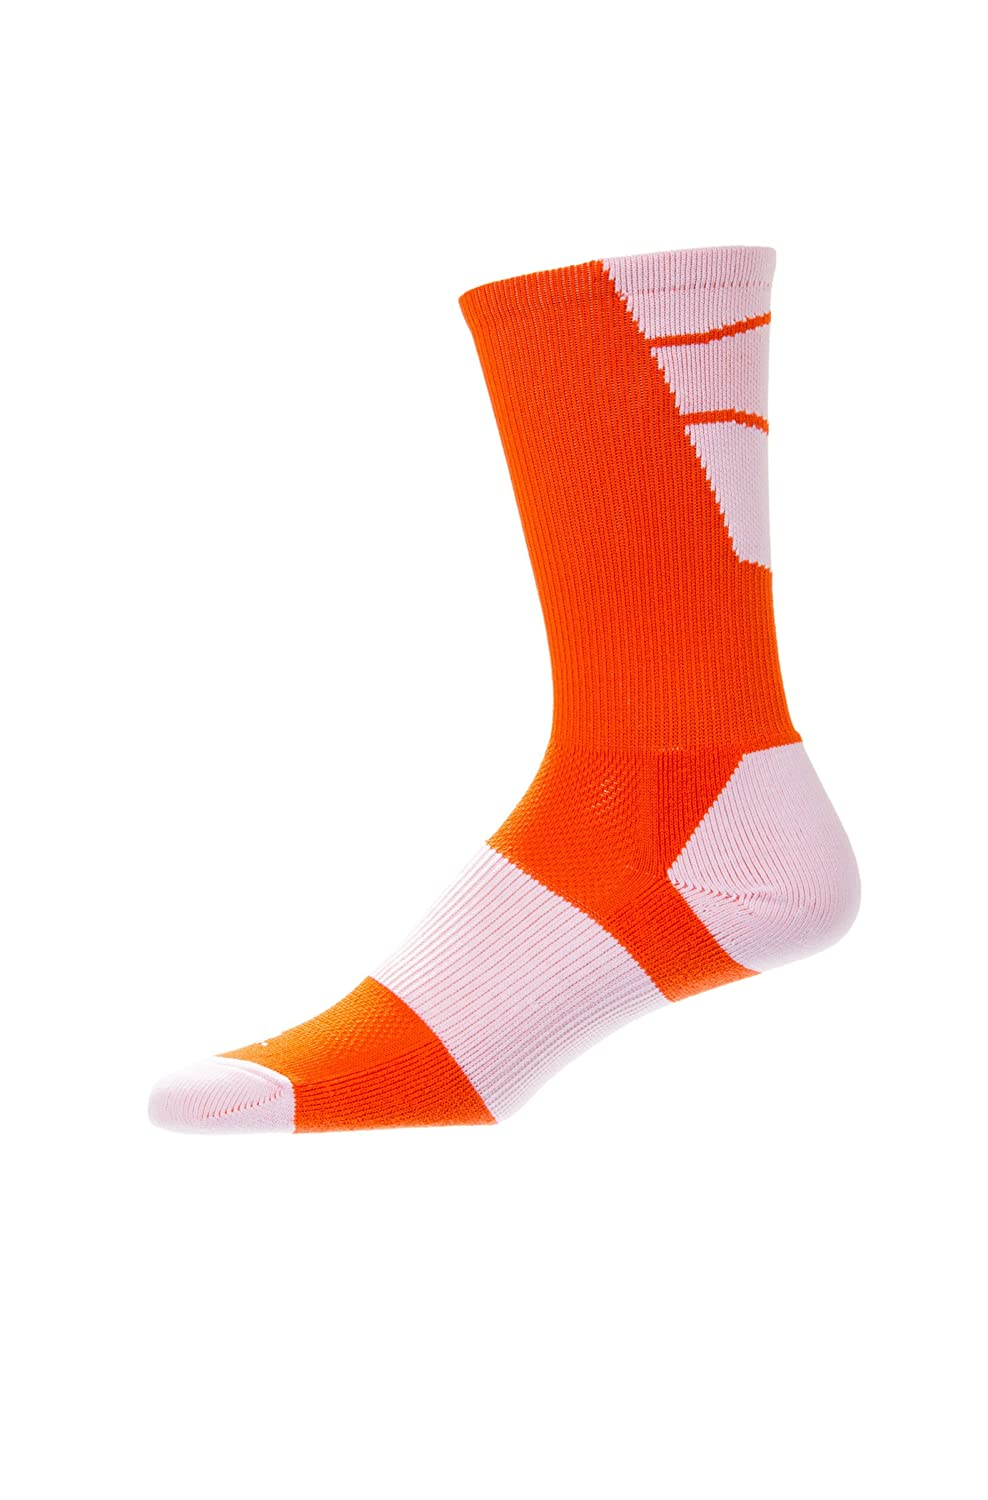 CSI Point Guard Performance Crew Socks Made In The USA Bt Orange/White 6MAN13022